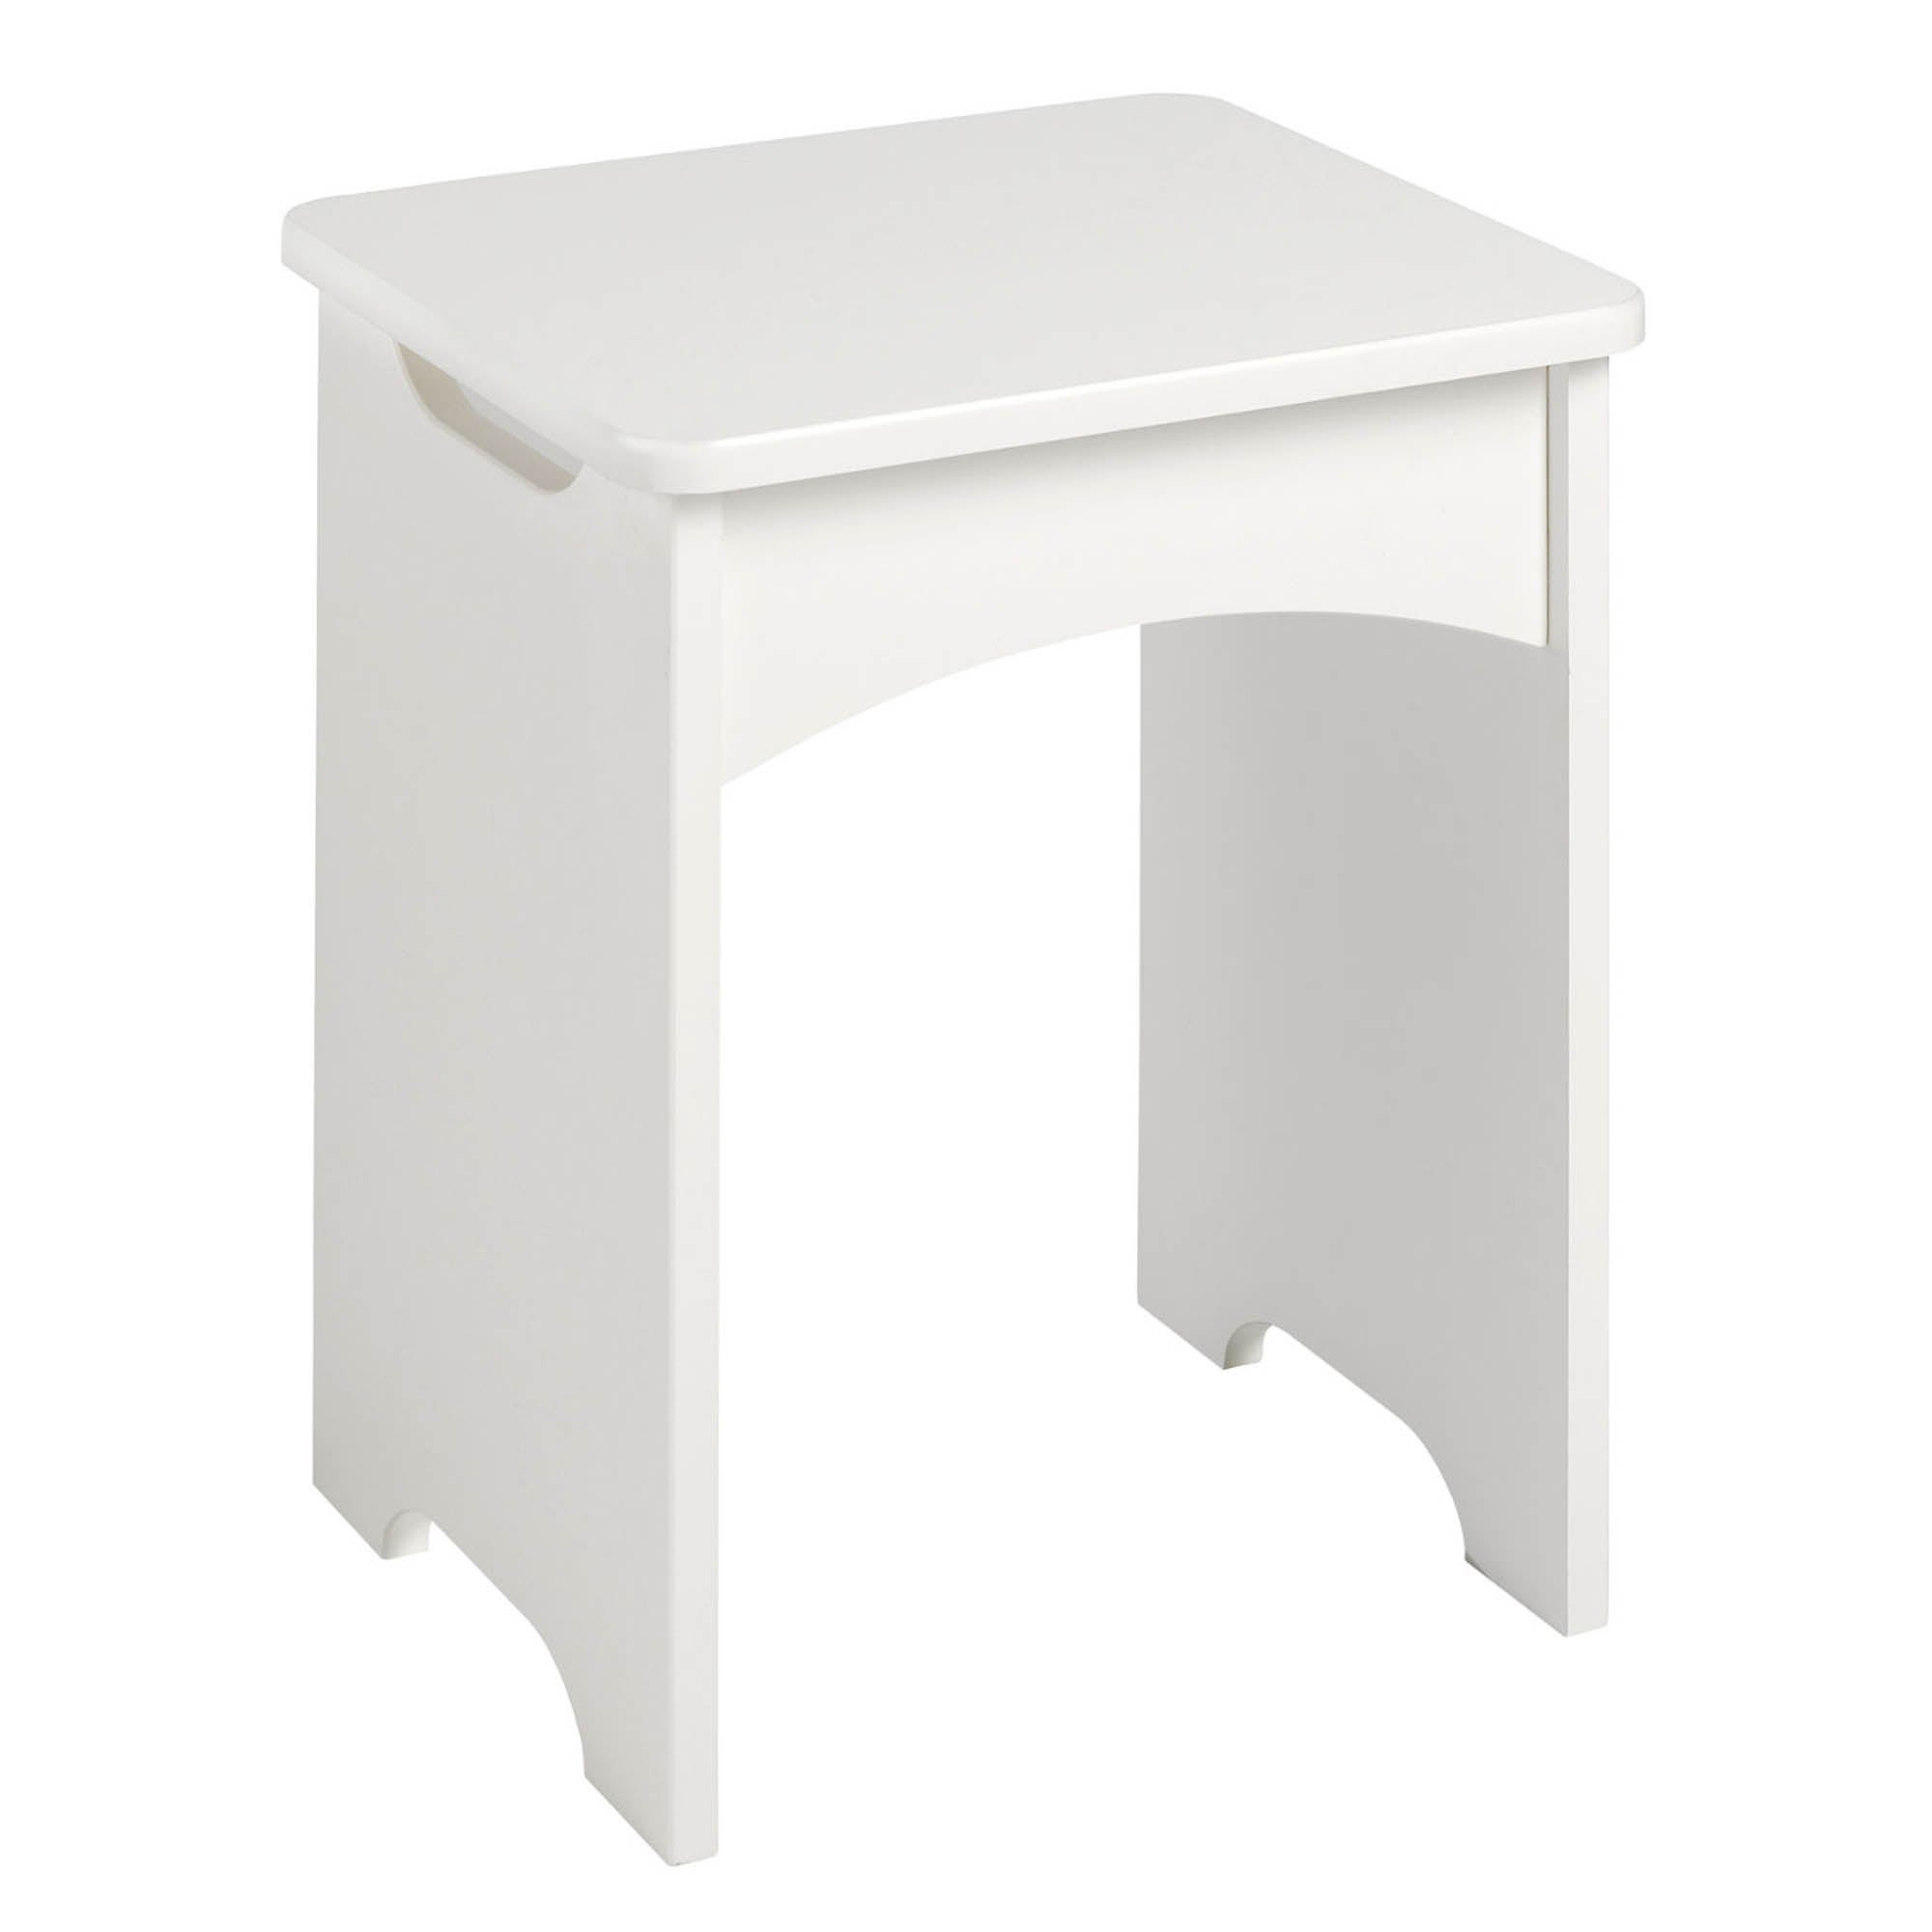 Photo of Calando parchment dressing table stool parchment -natural-